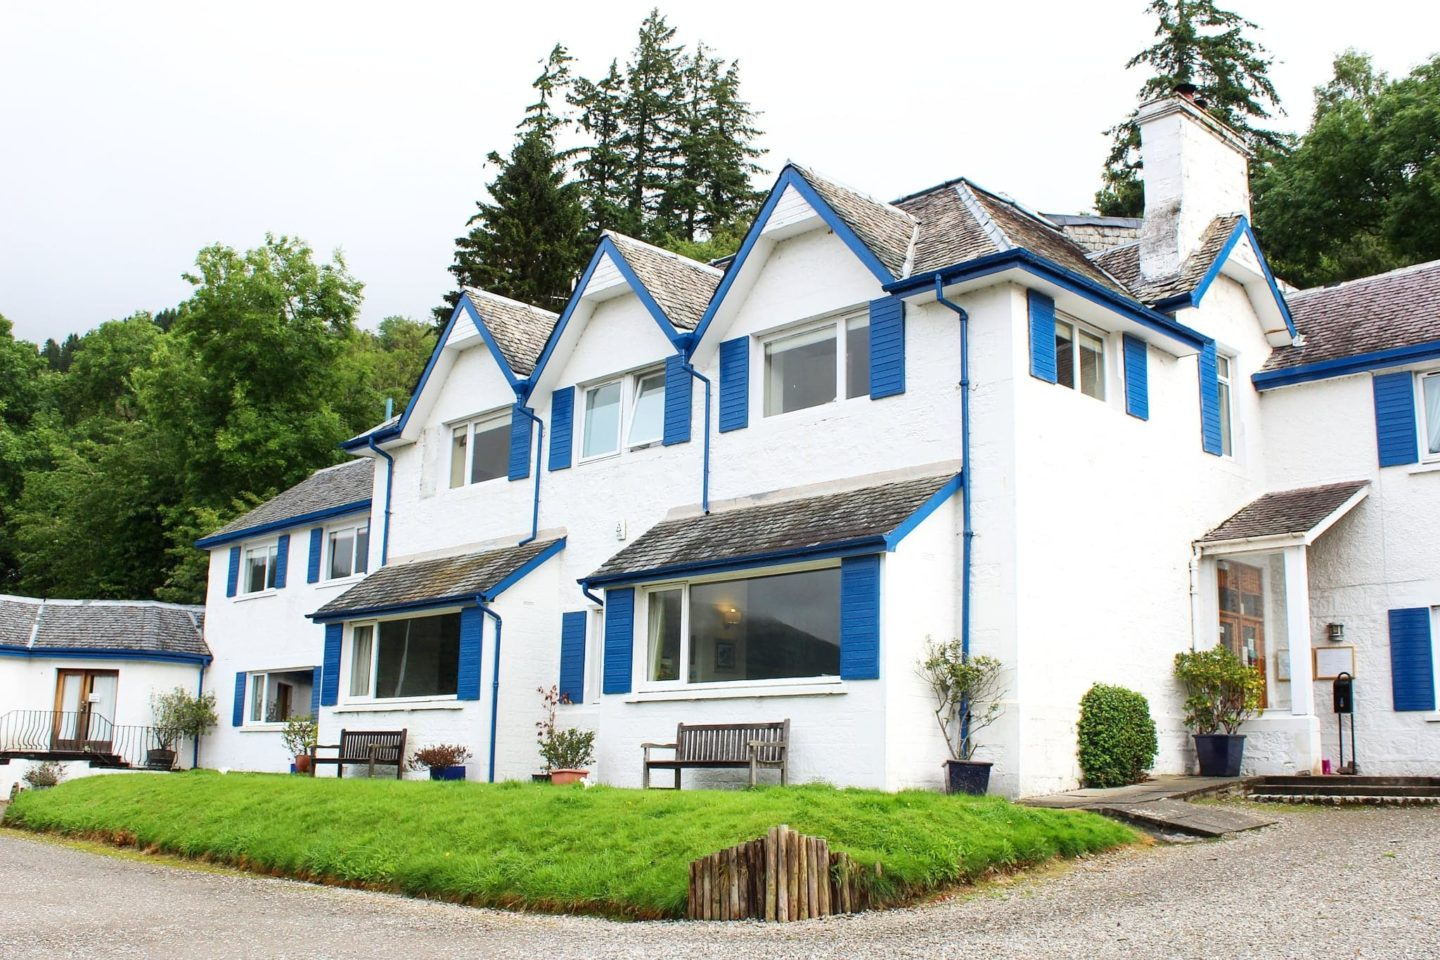 The Four Seasons Hotel, St Fillans